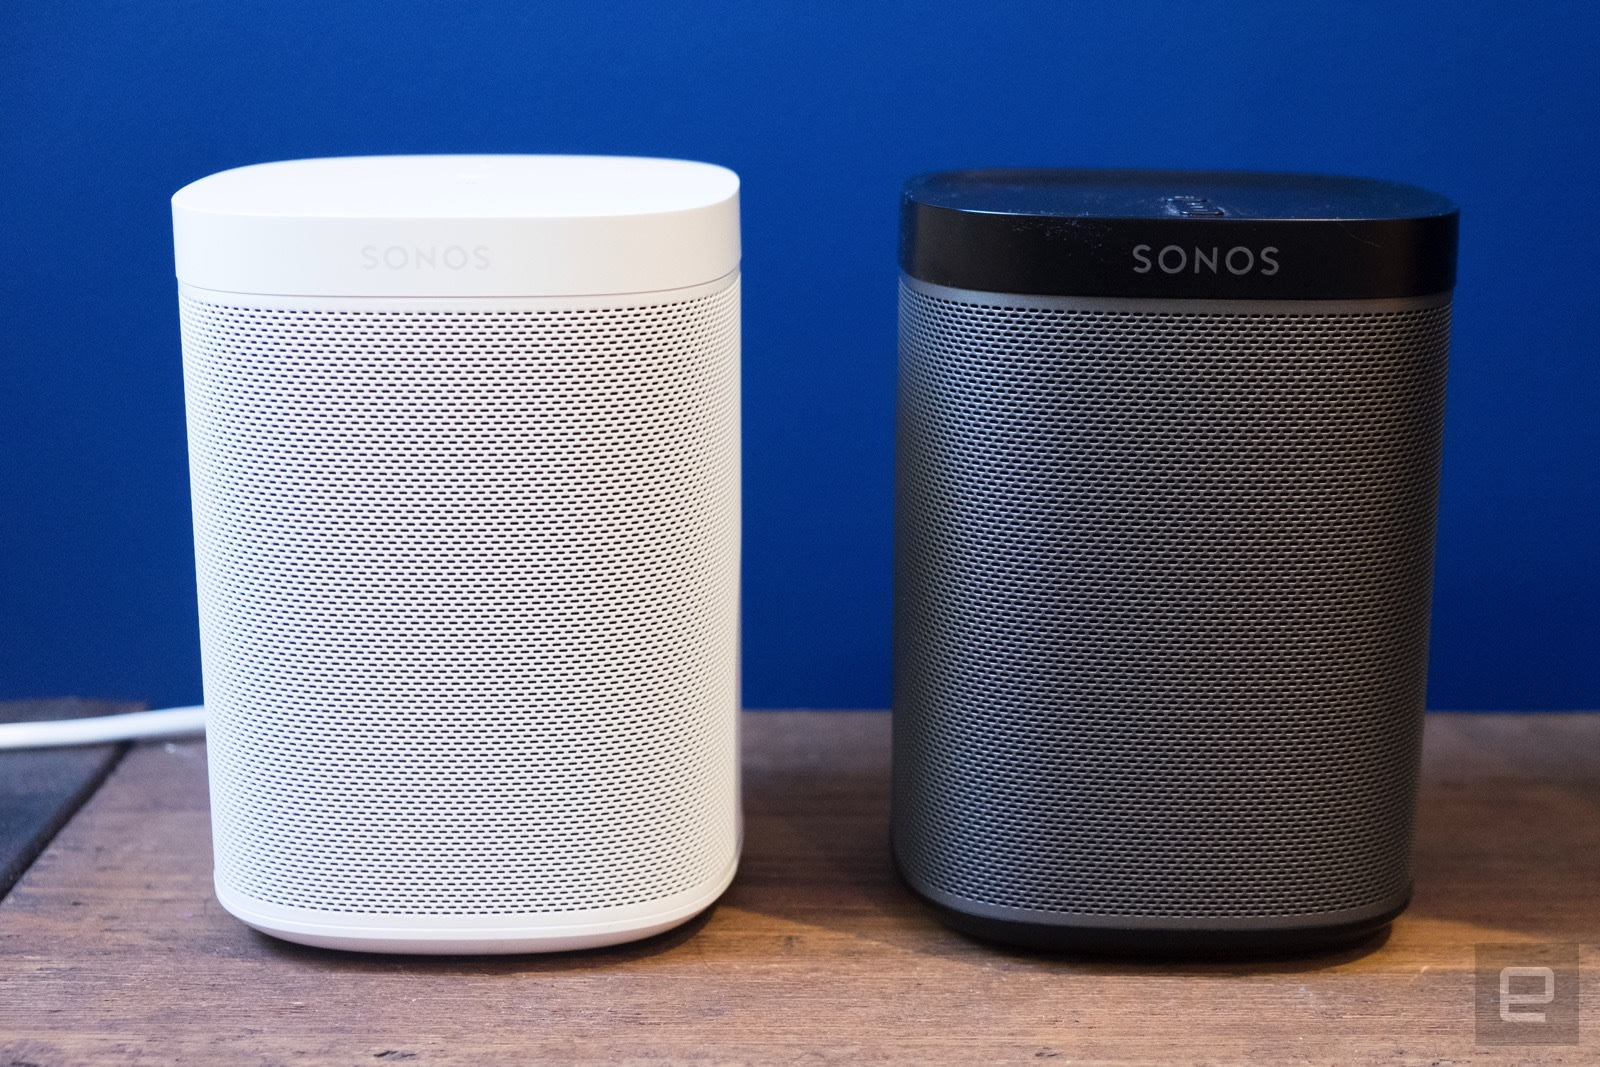 Sonos may add Roku's entertainment platform to its speakers